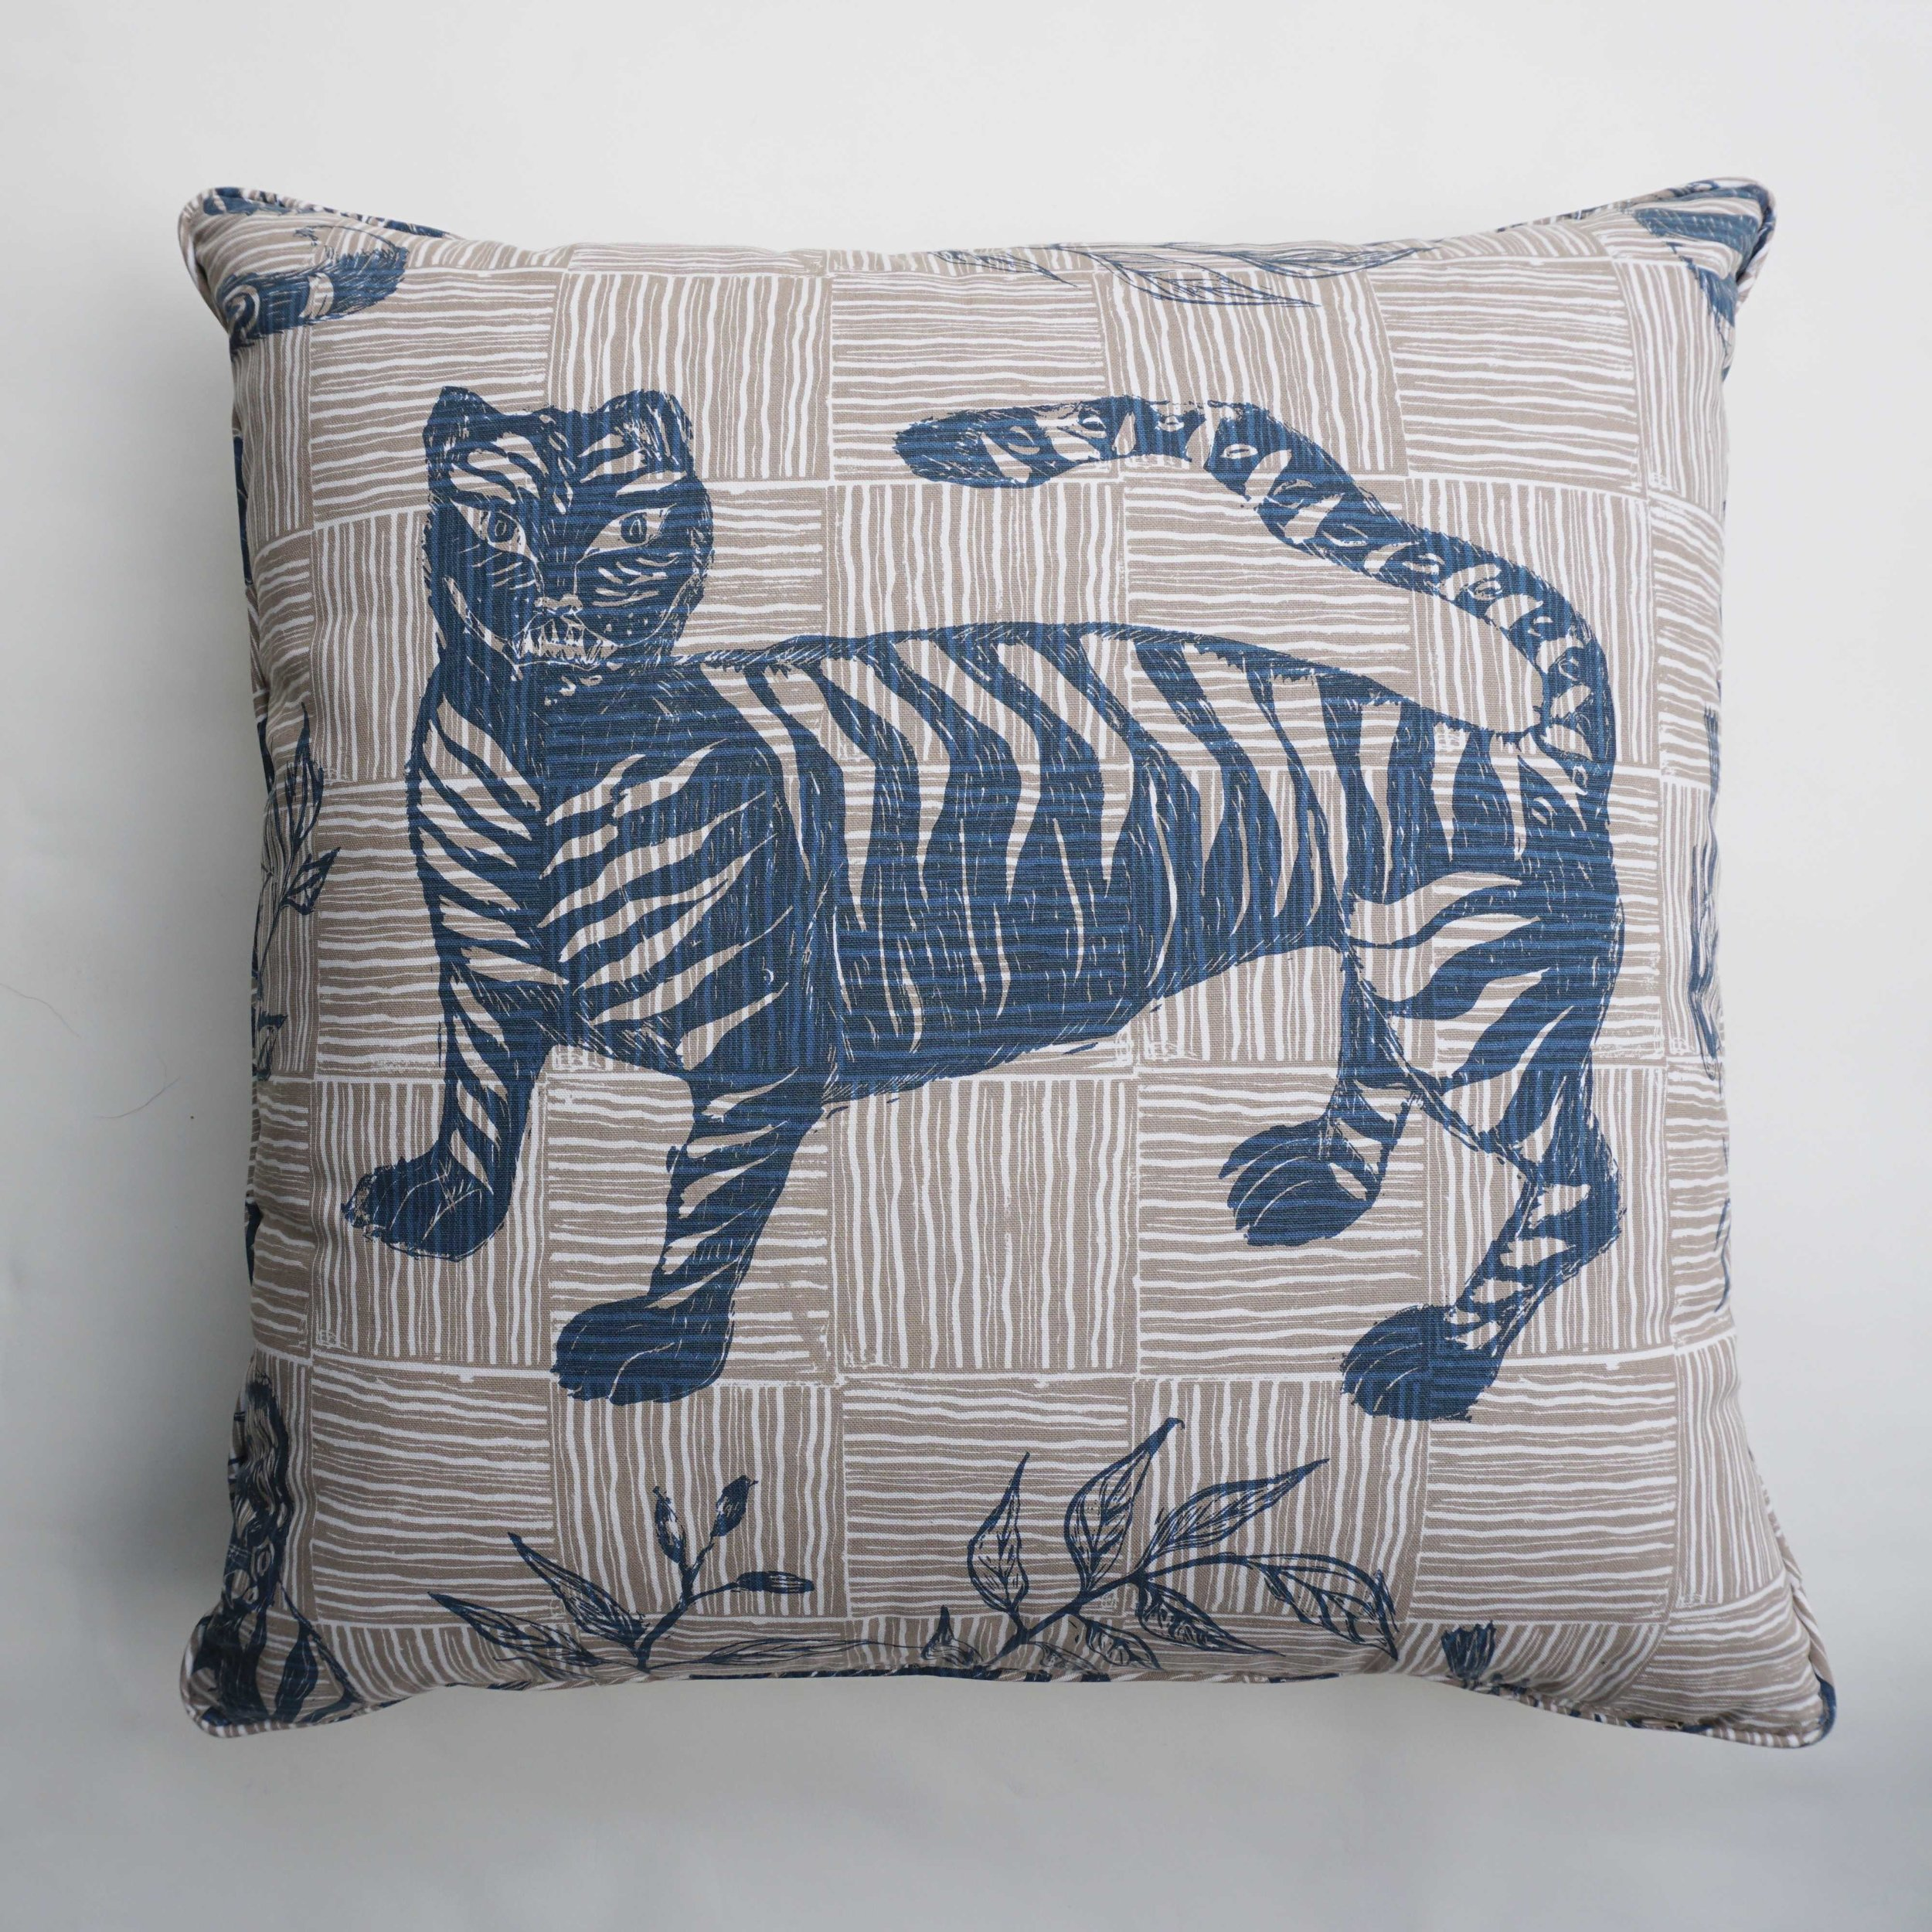 Standing Tiger & Magpie in Deep Blue, KF220-01P